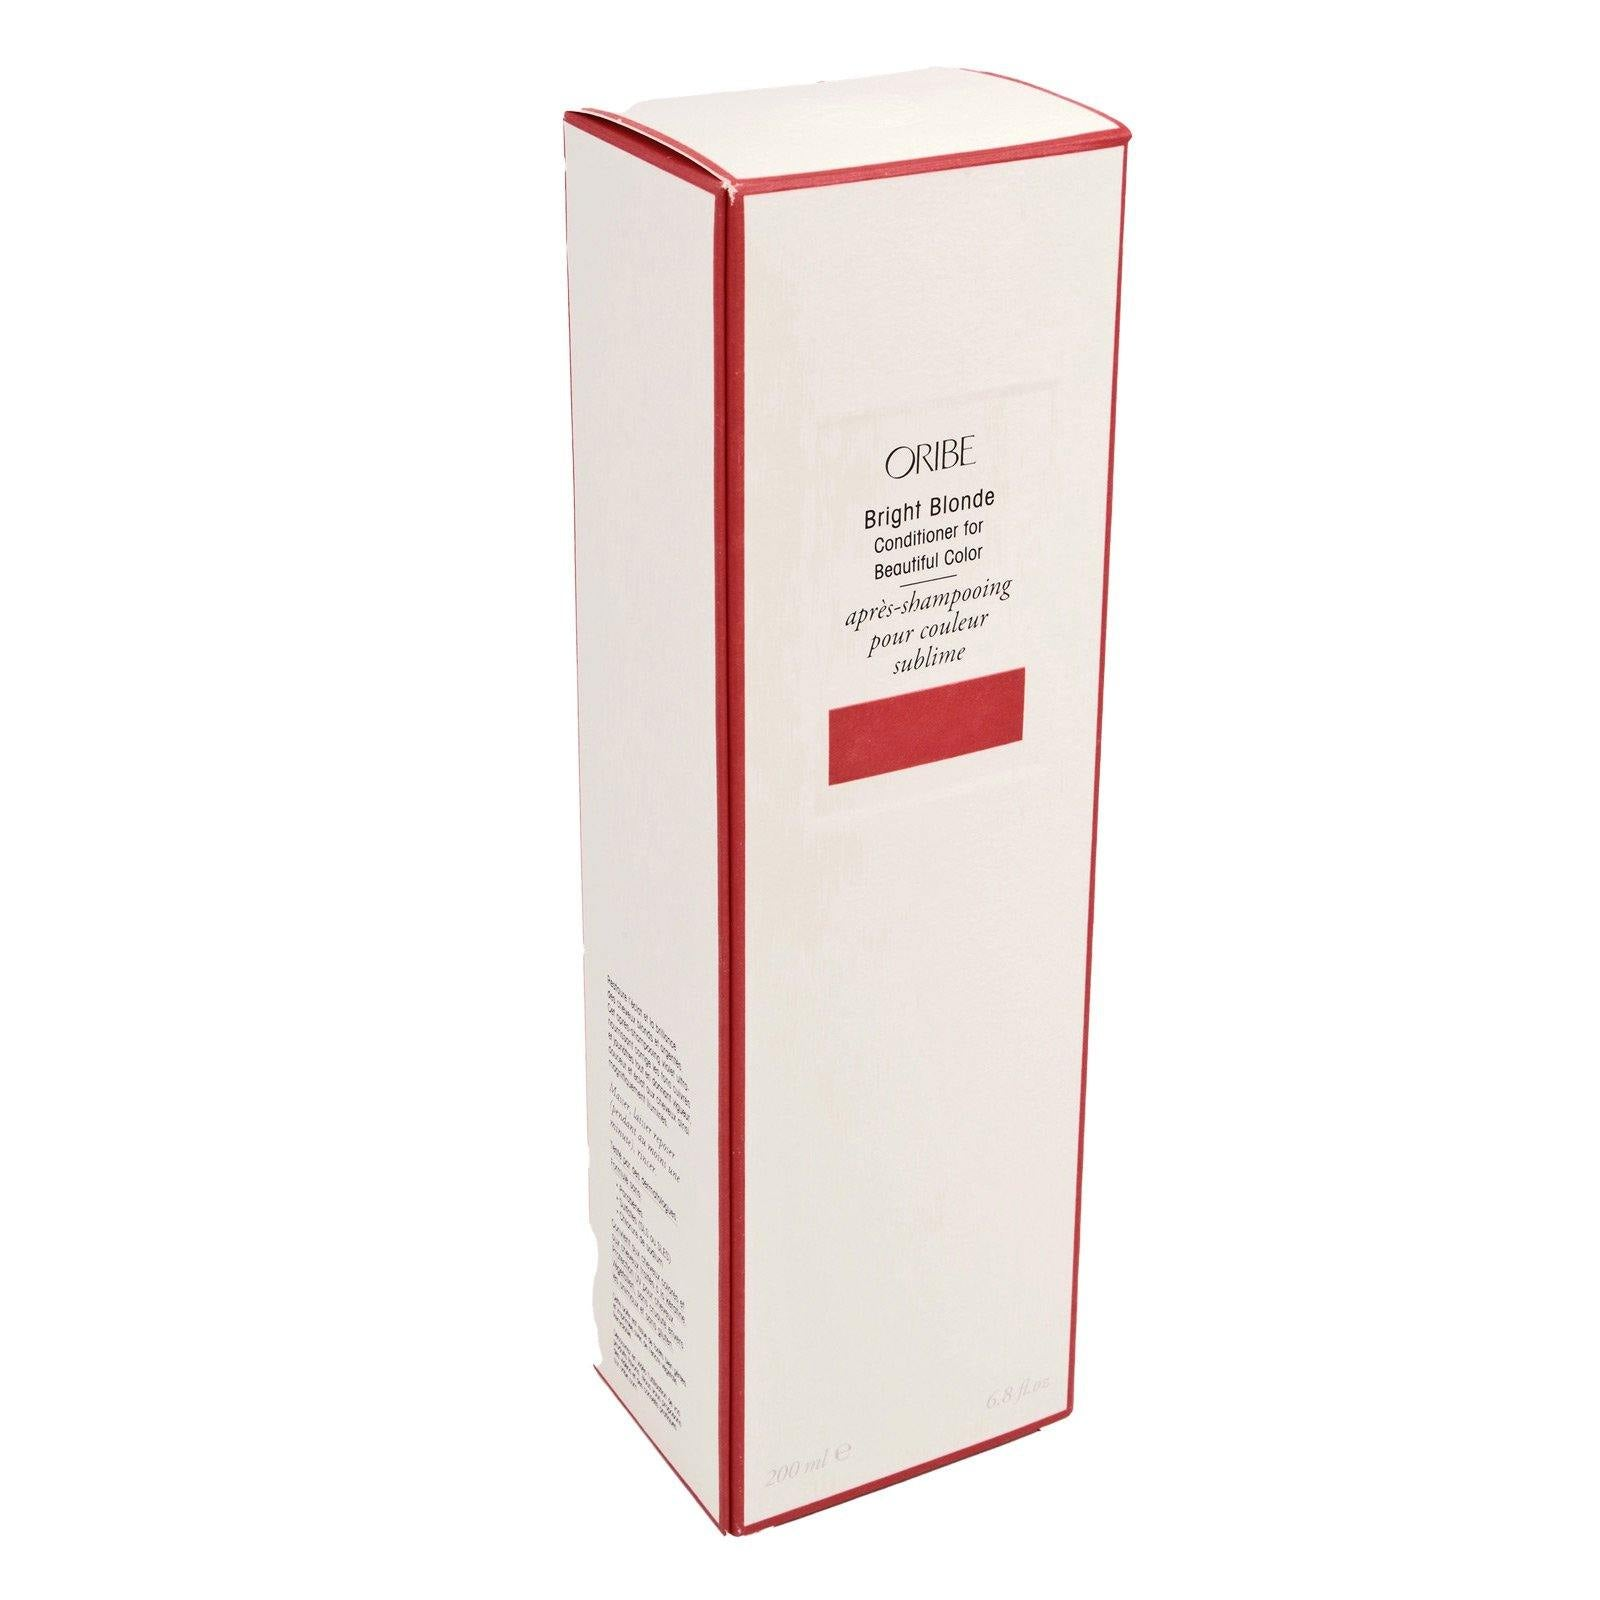 Oribe Conditioner 200ml Bright Blonde - (200ml) (12/cs)